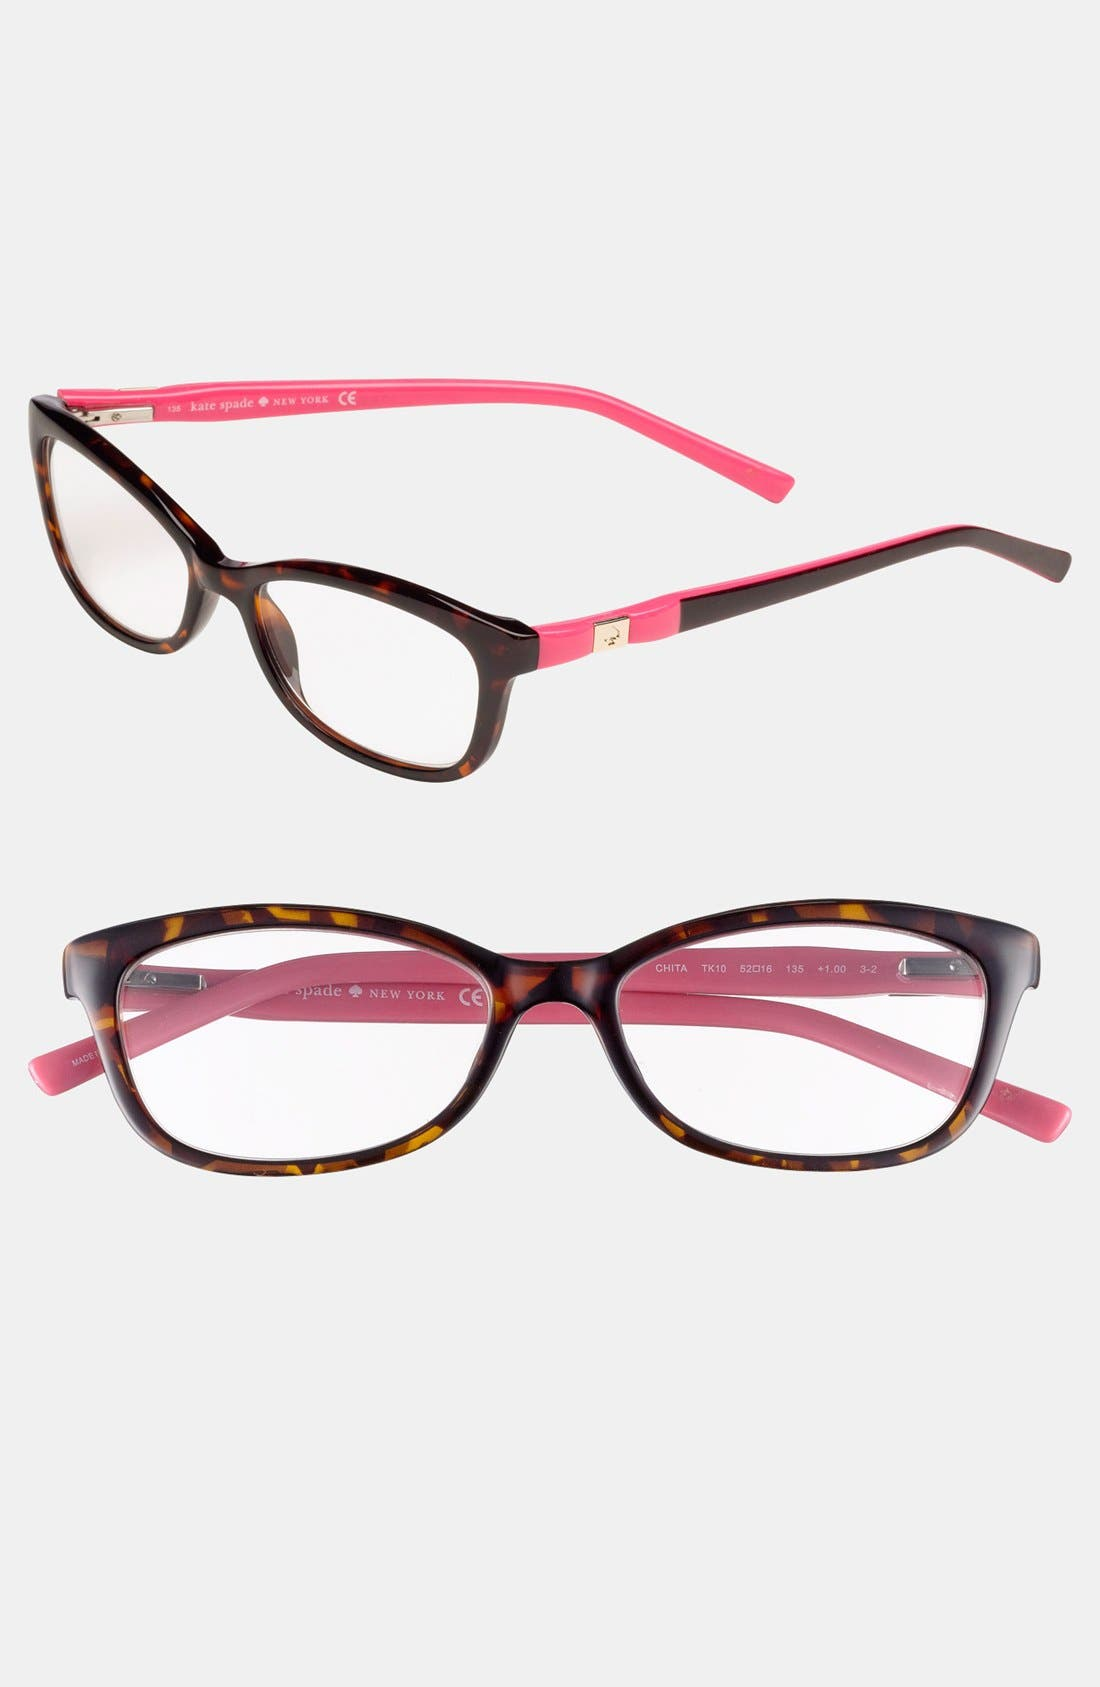 Alternate Image 1 Selected - kate spade new york 'chita' 52mm reading glasses